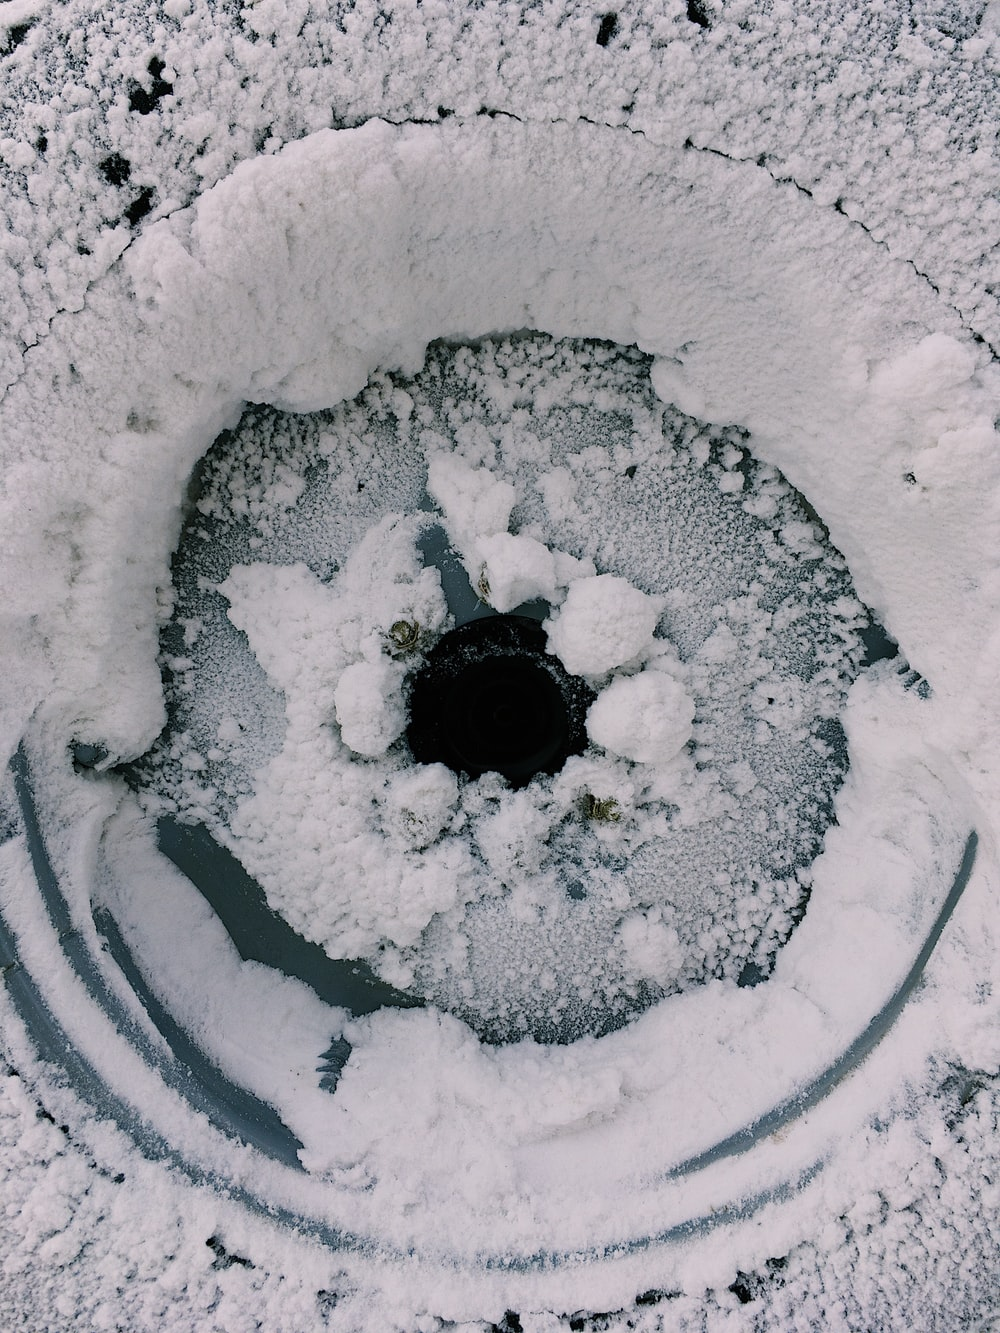 grayscale photo of hole in the middle of snow